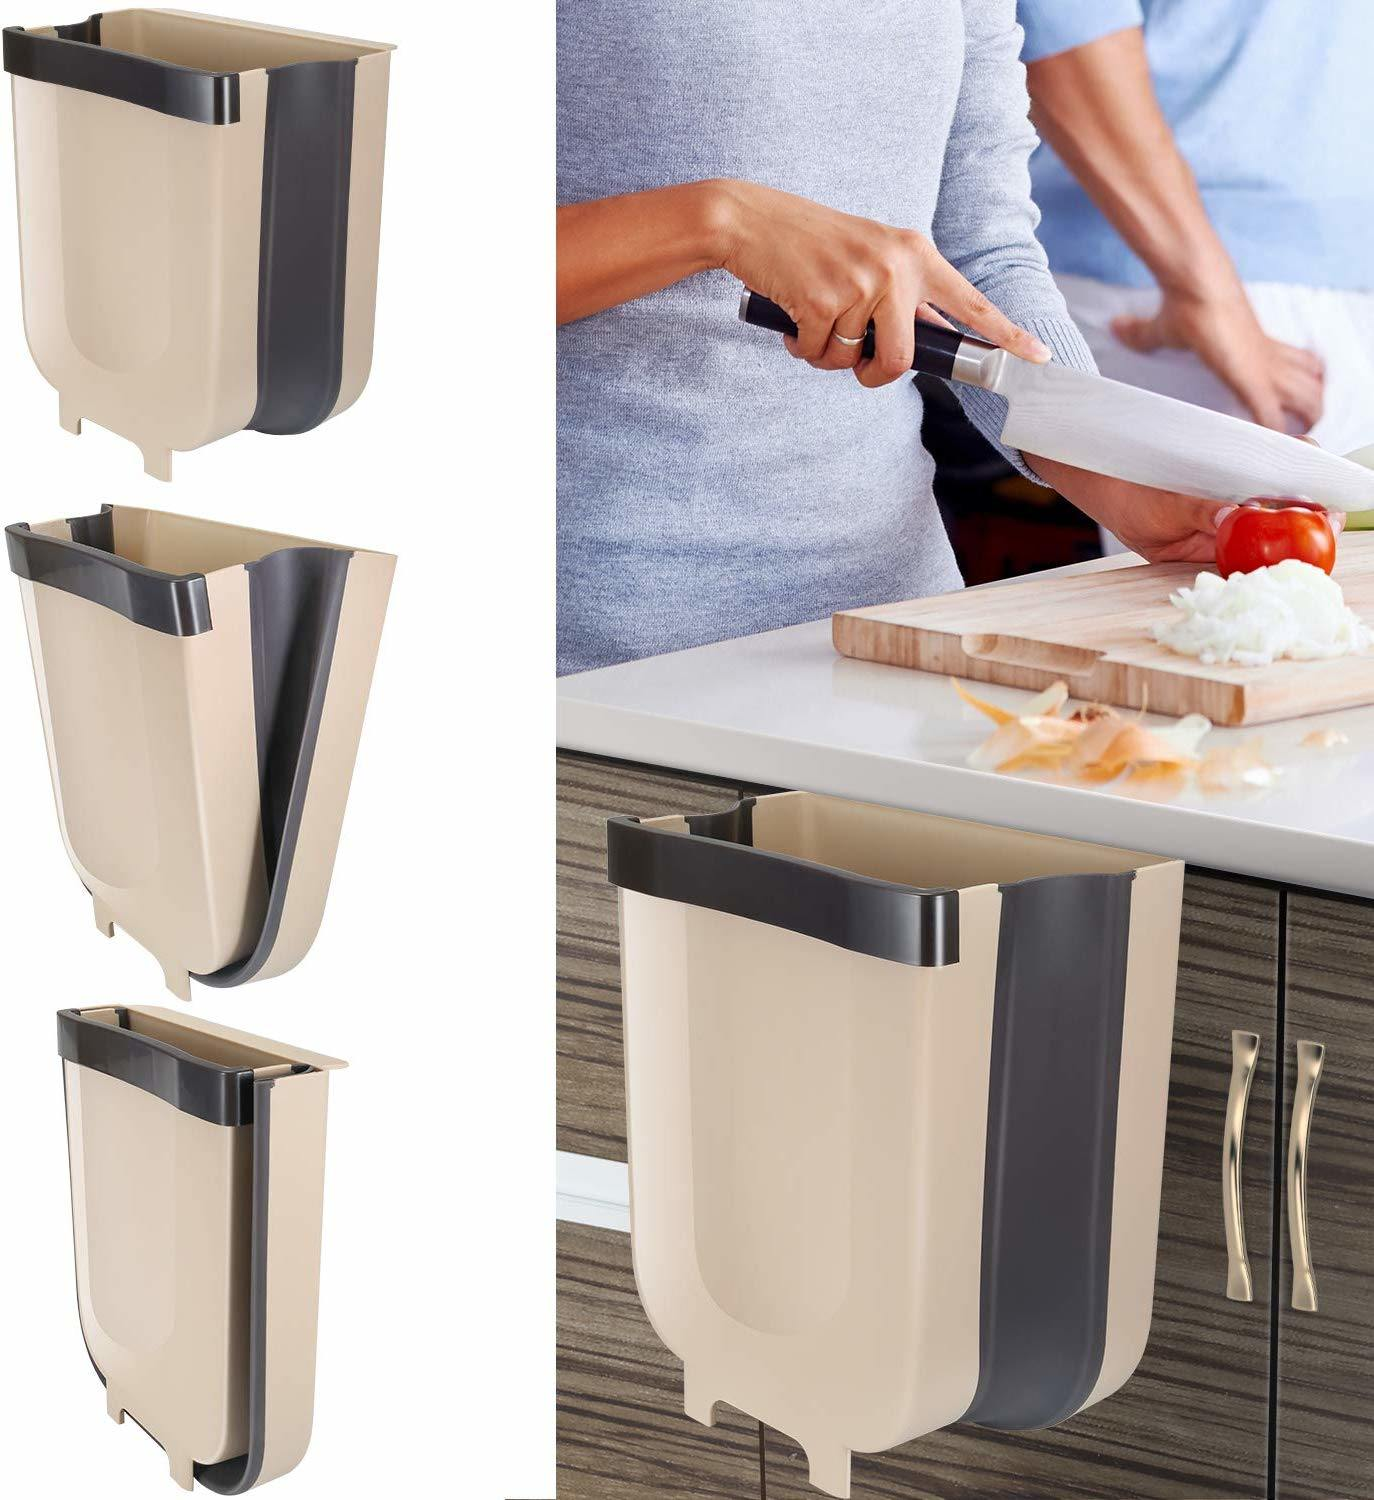 China Braoses Hanging Trash Can For Kitchen Cabinet Door Small Collapsible Foldable Waste Bins China Foldable Storage Drawer And Trash Can Price